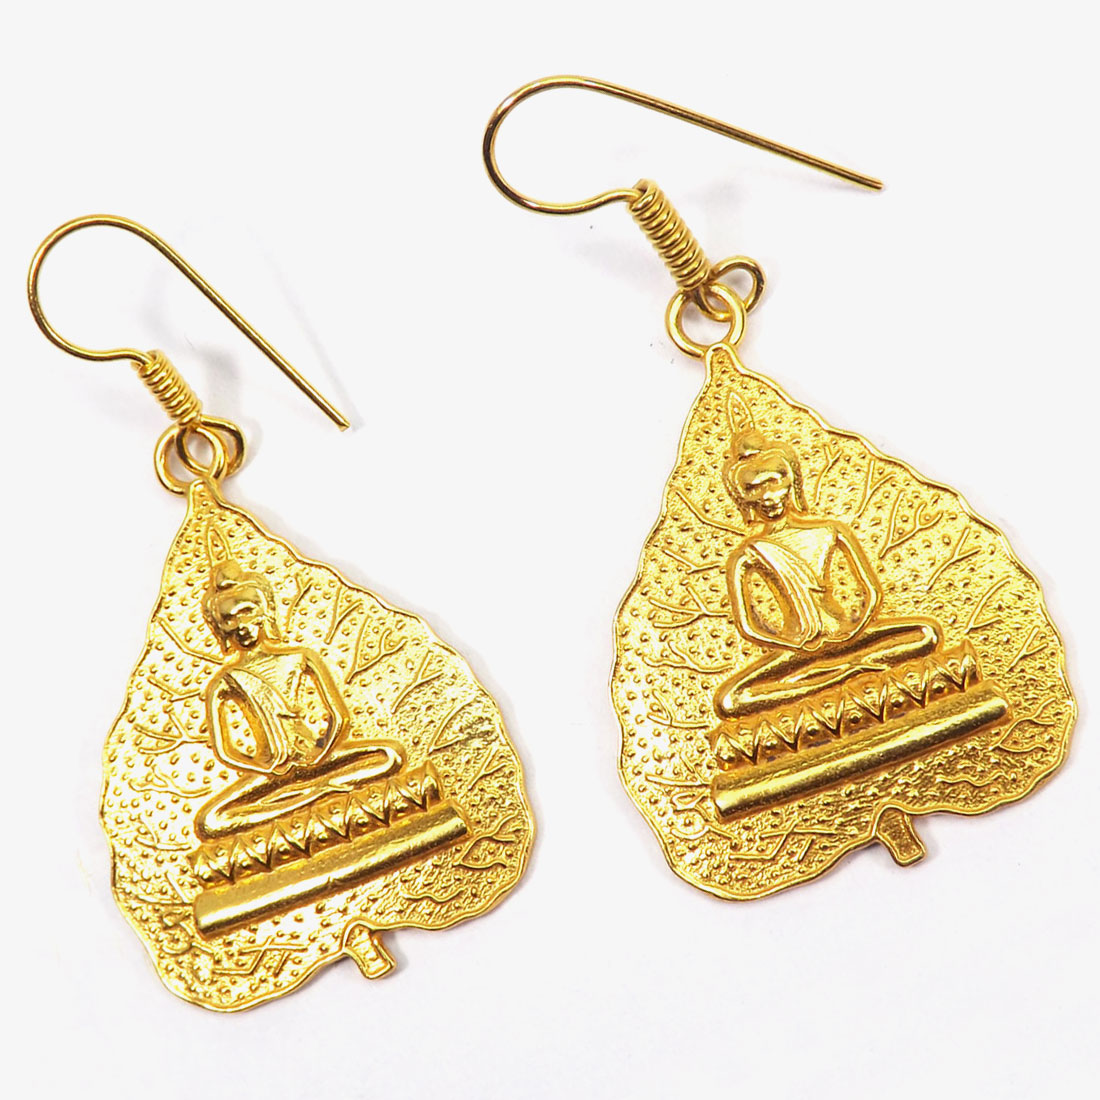 Brass Buddha Earrings C - PBJ996-Religious Made in Brass with Gold Plated Vermeil Buddha E